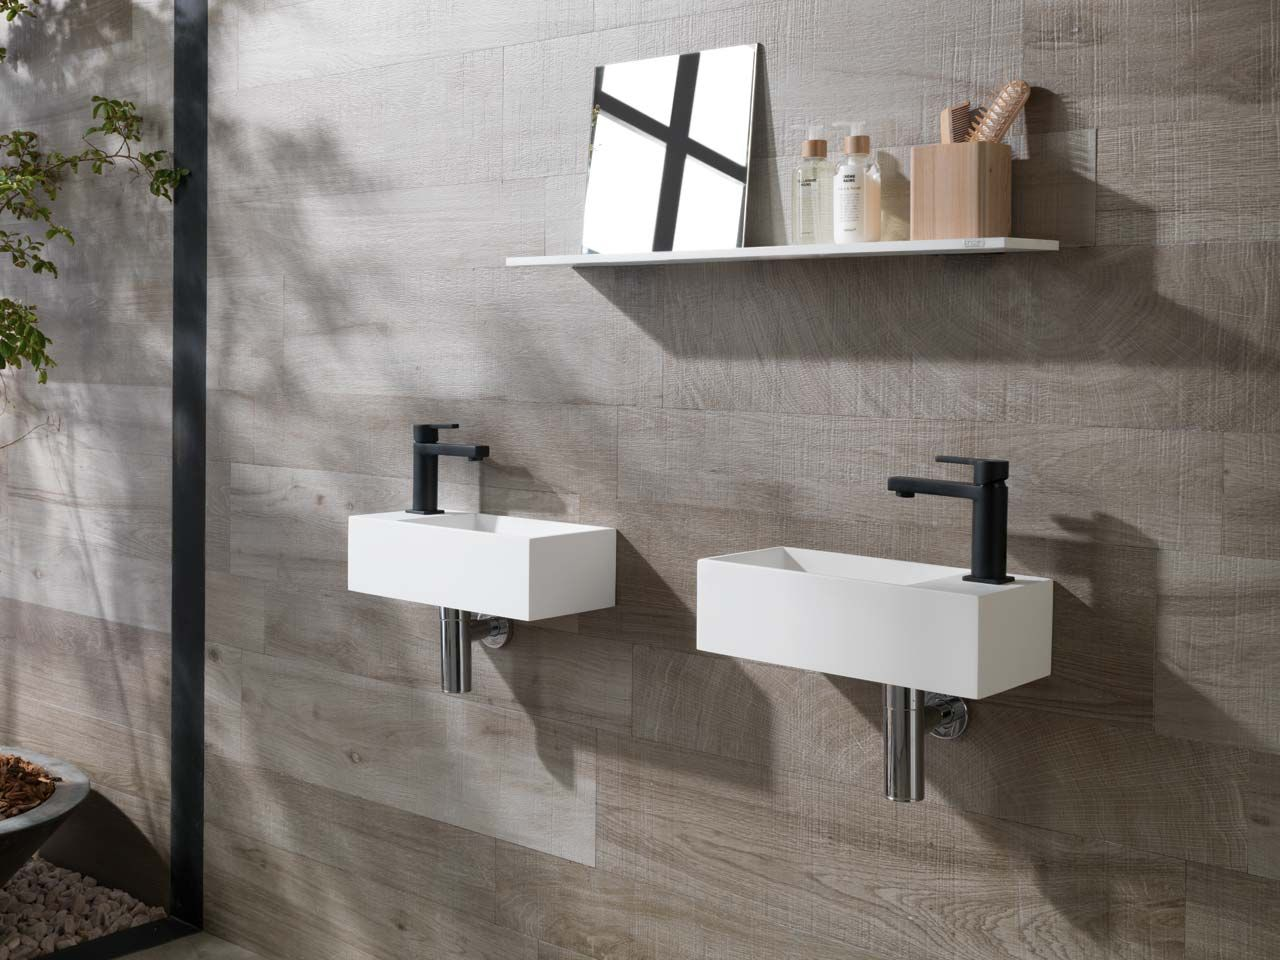 Scaletta Bagno ~ 227 best bagno images on pinterest bathroom ideas design